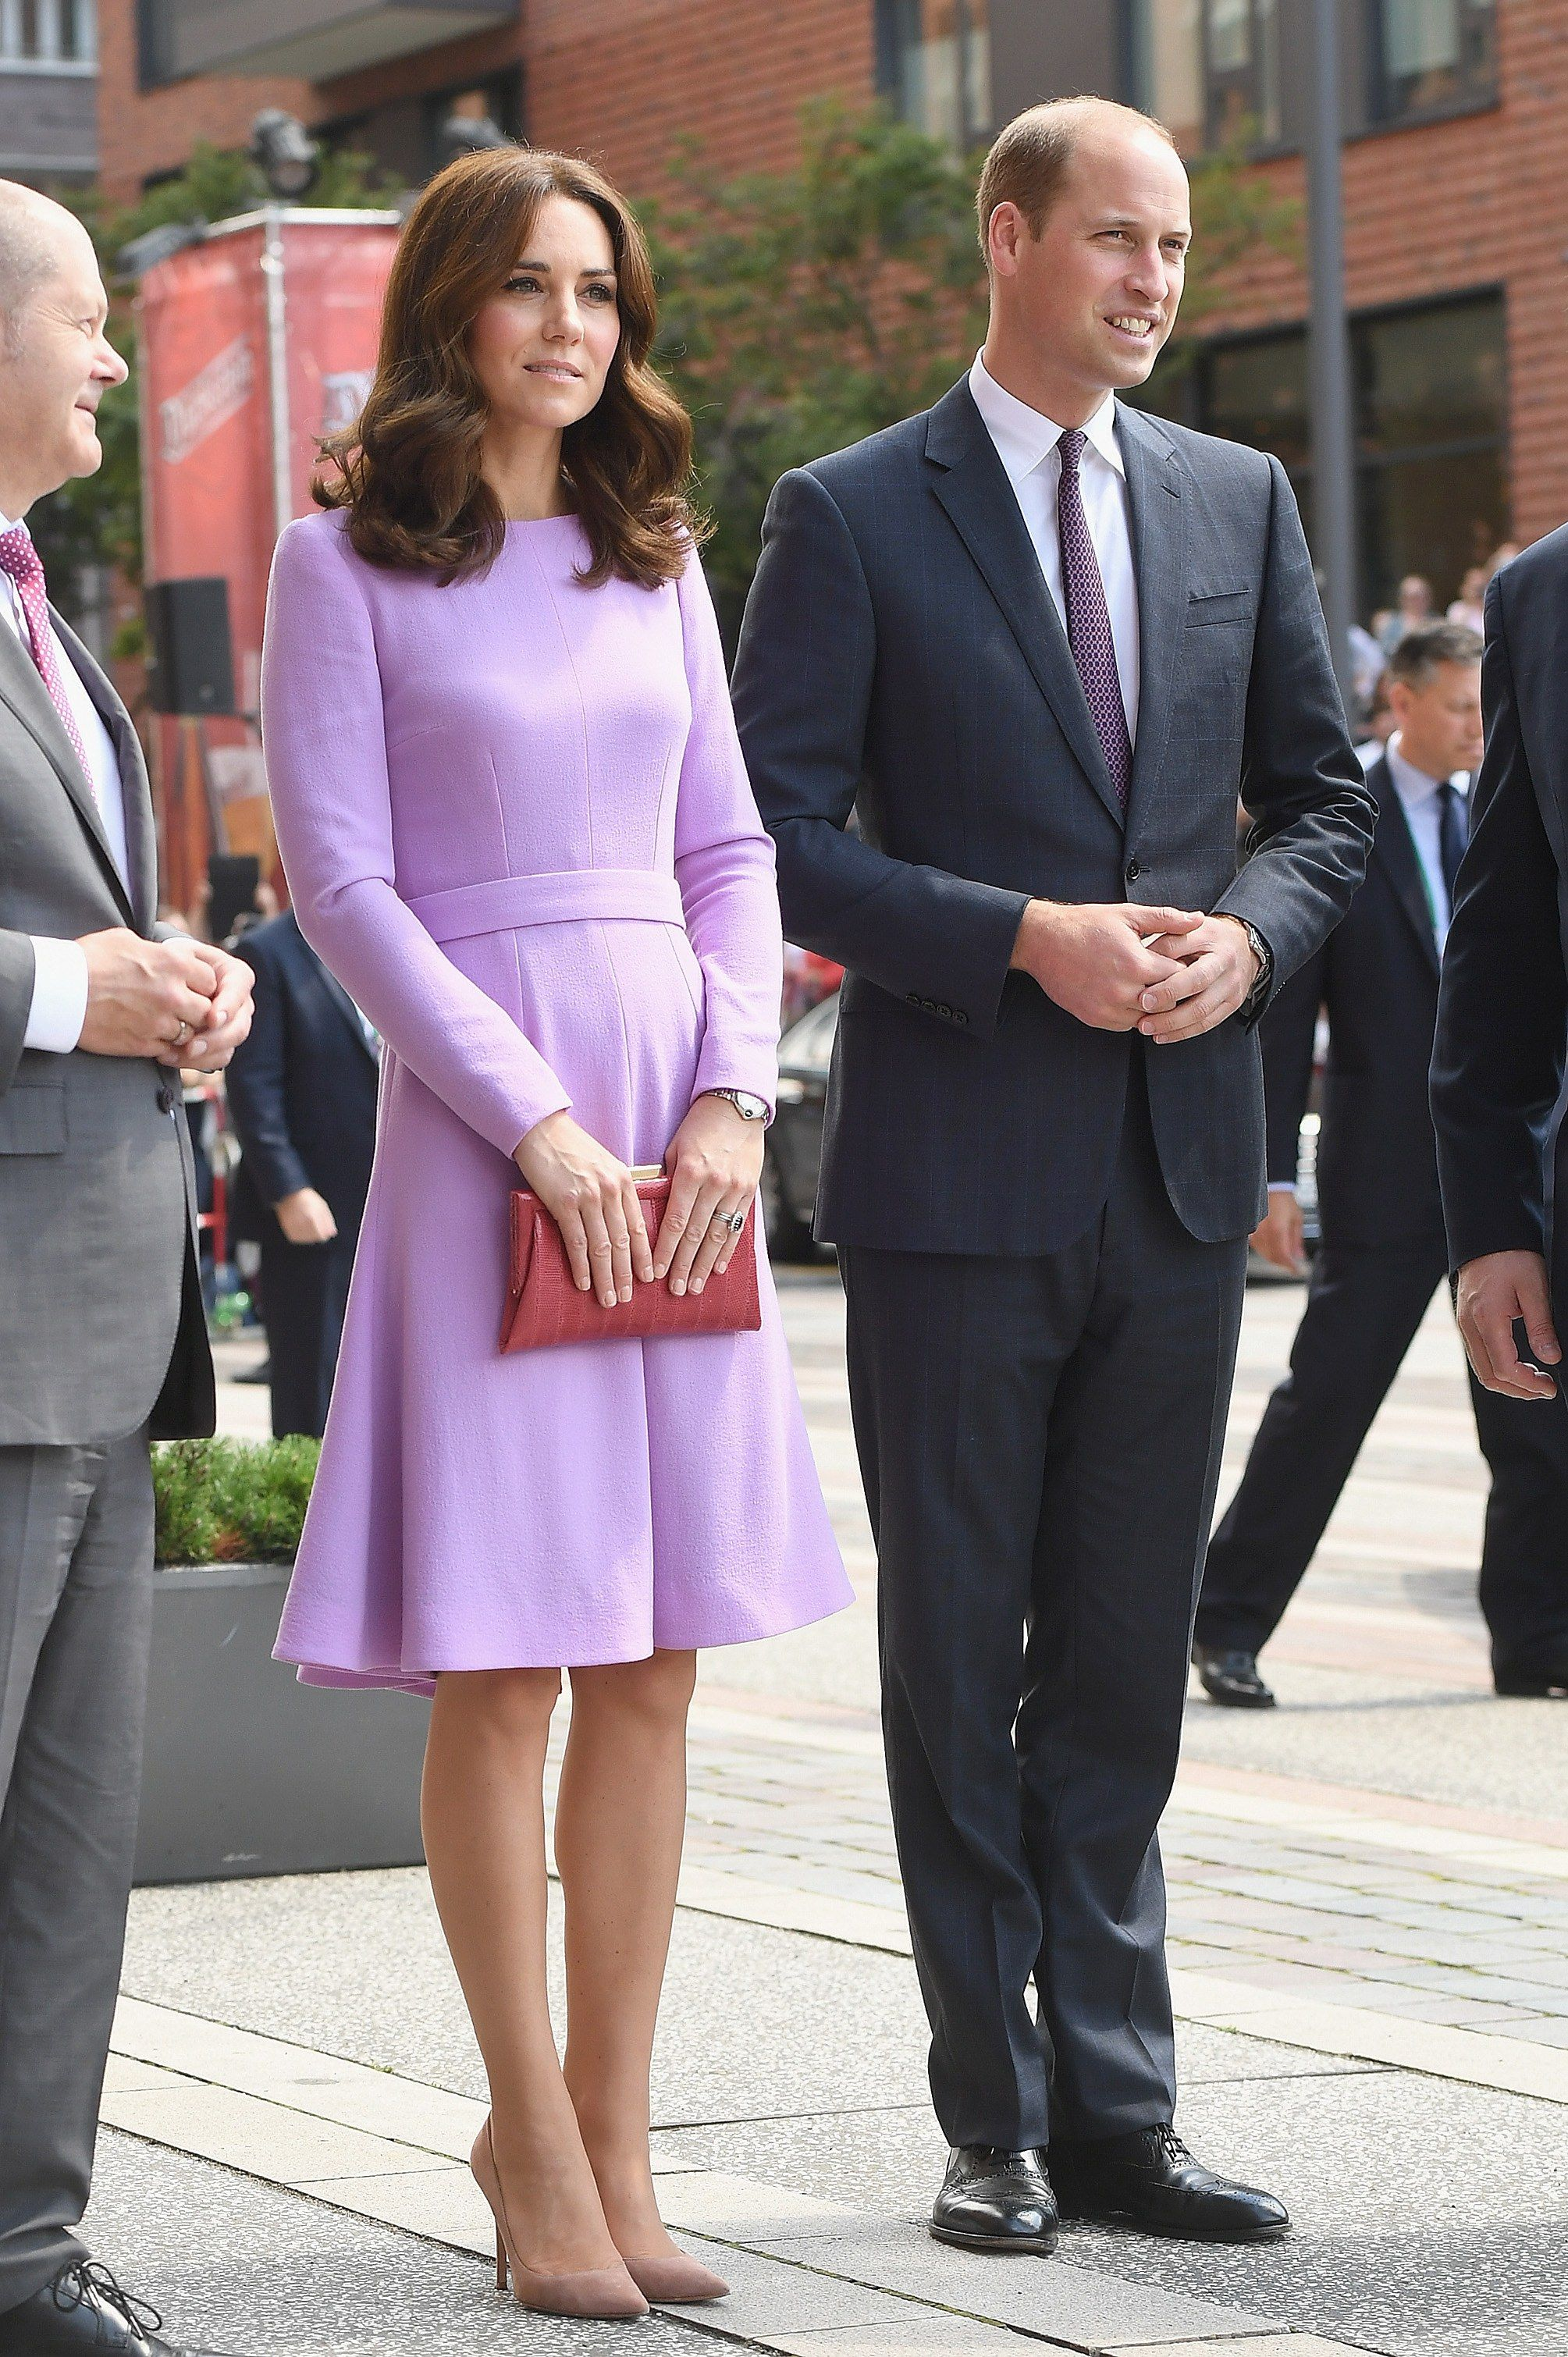 Kate Middleton s Lilac Dress Is a Stealth Style Hit in Germany ... 56d29b8b7